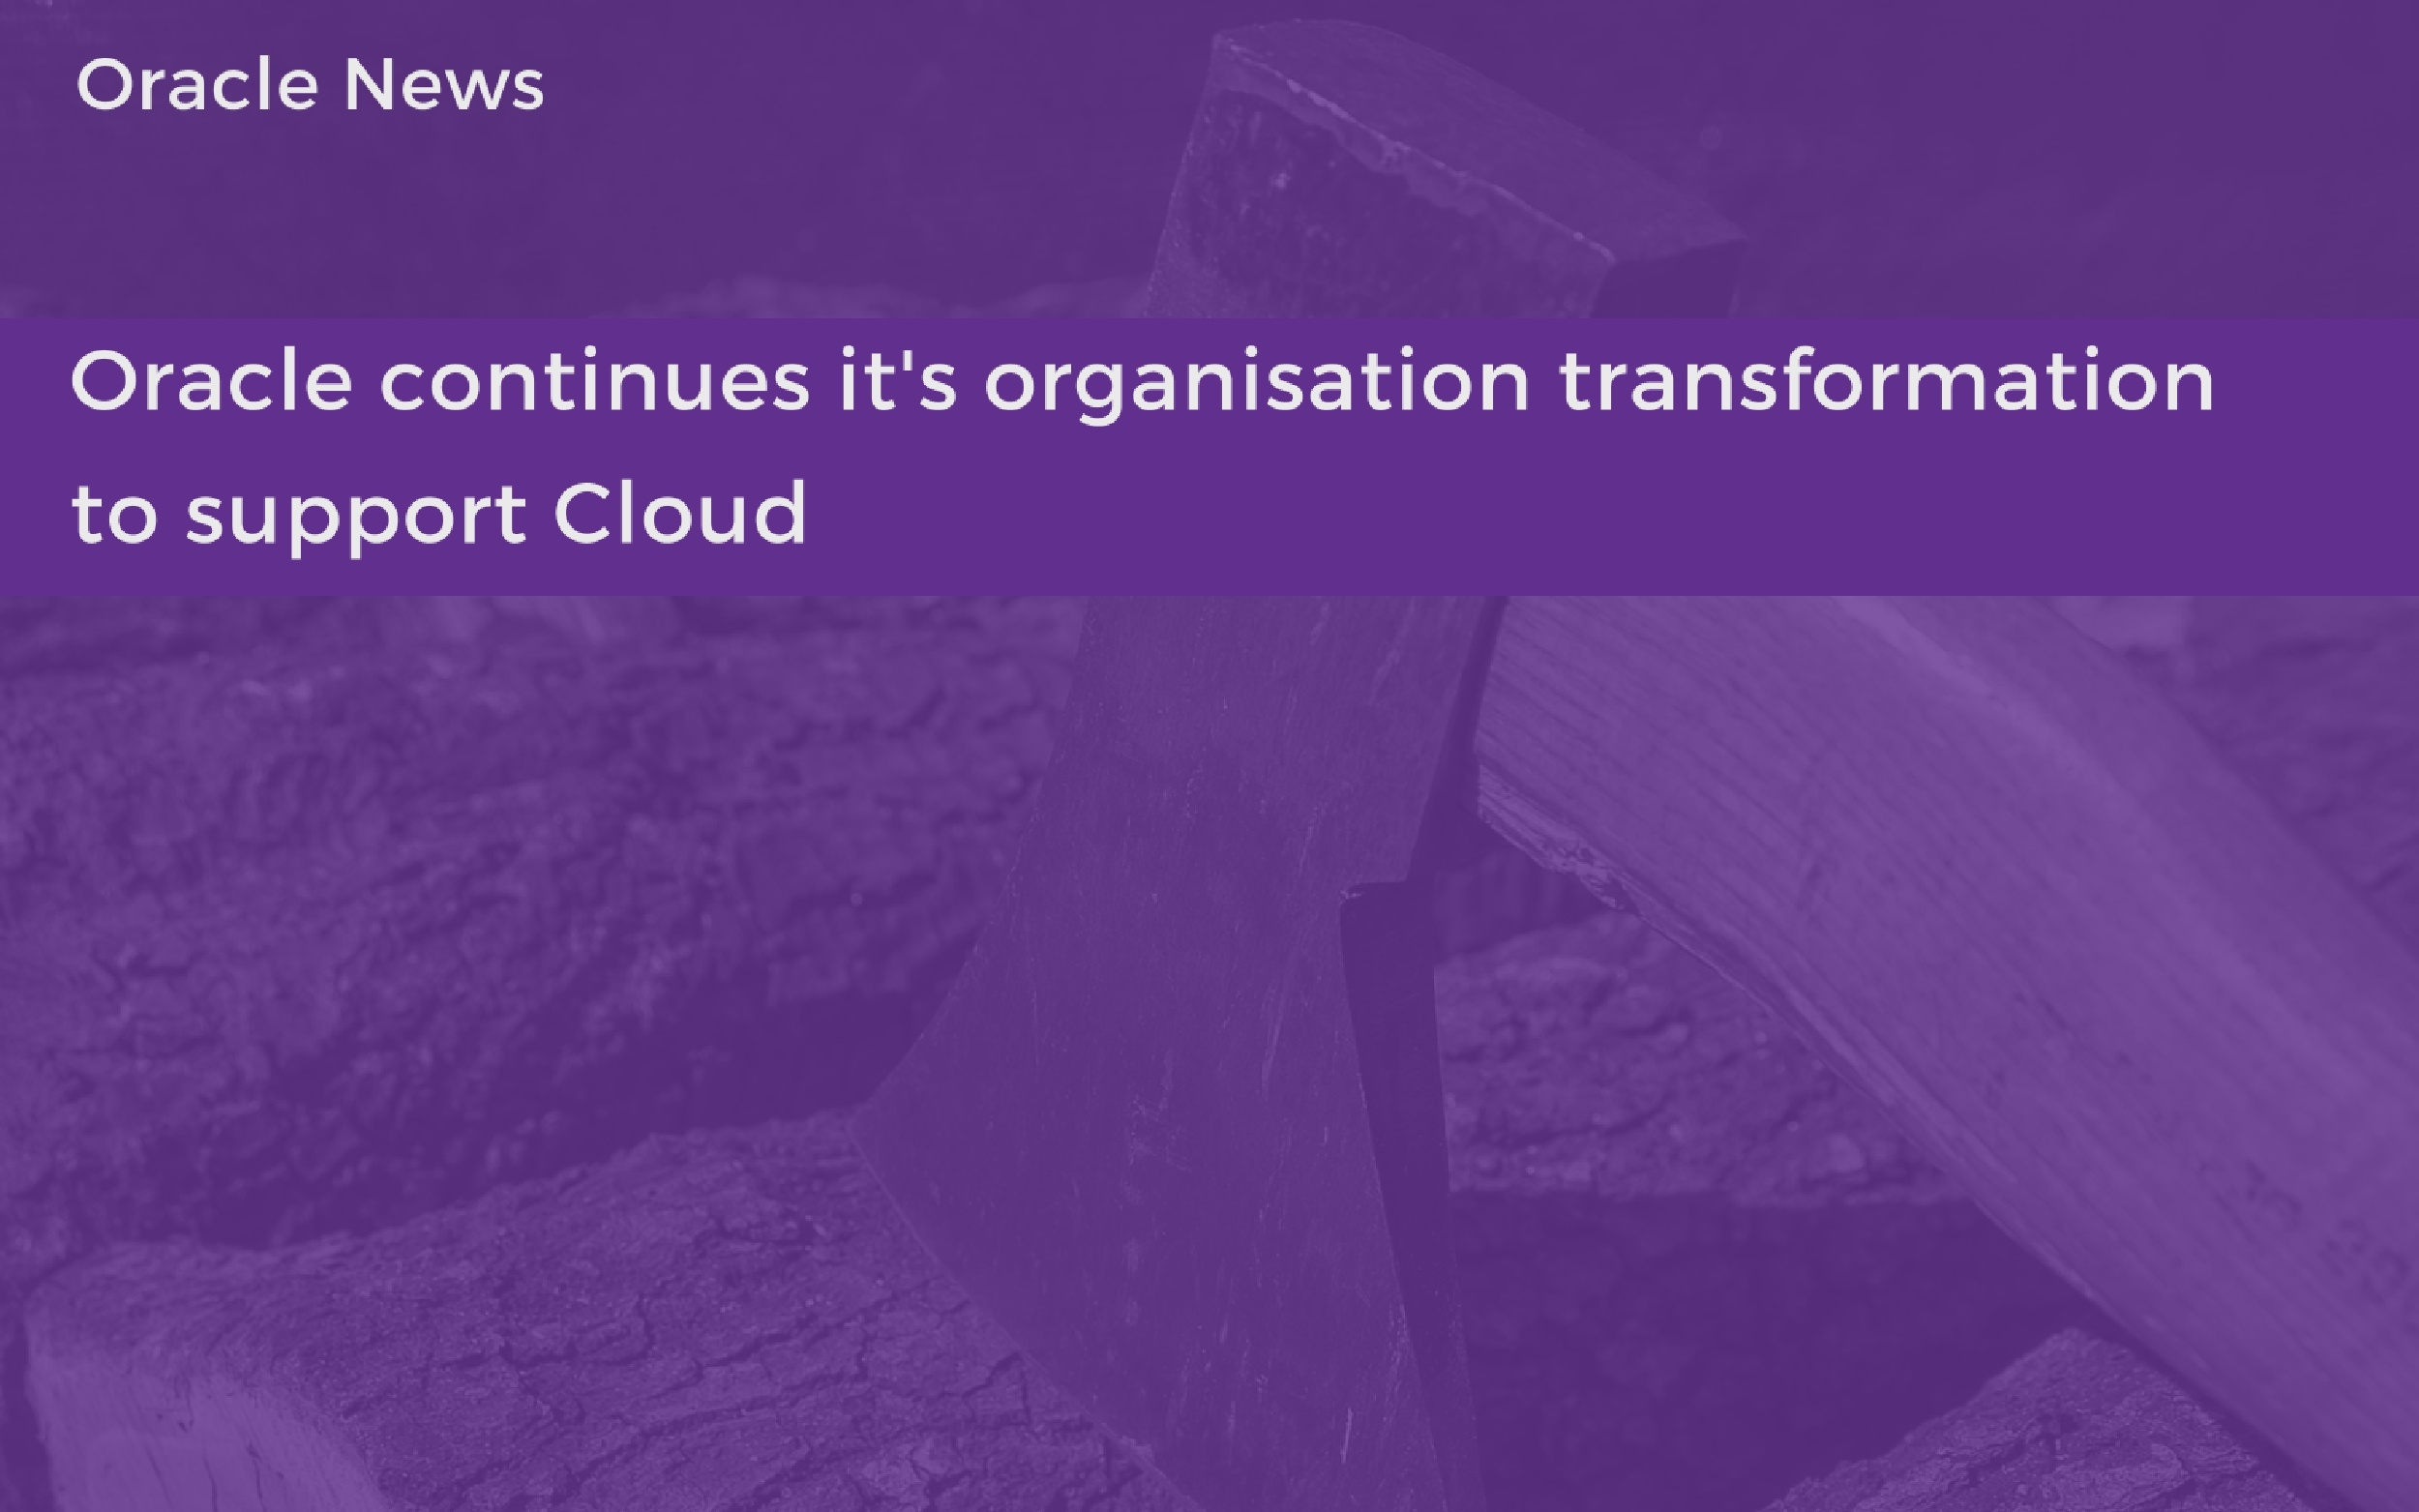 Oracle continues it's organisation transformation to support Cloud